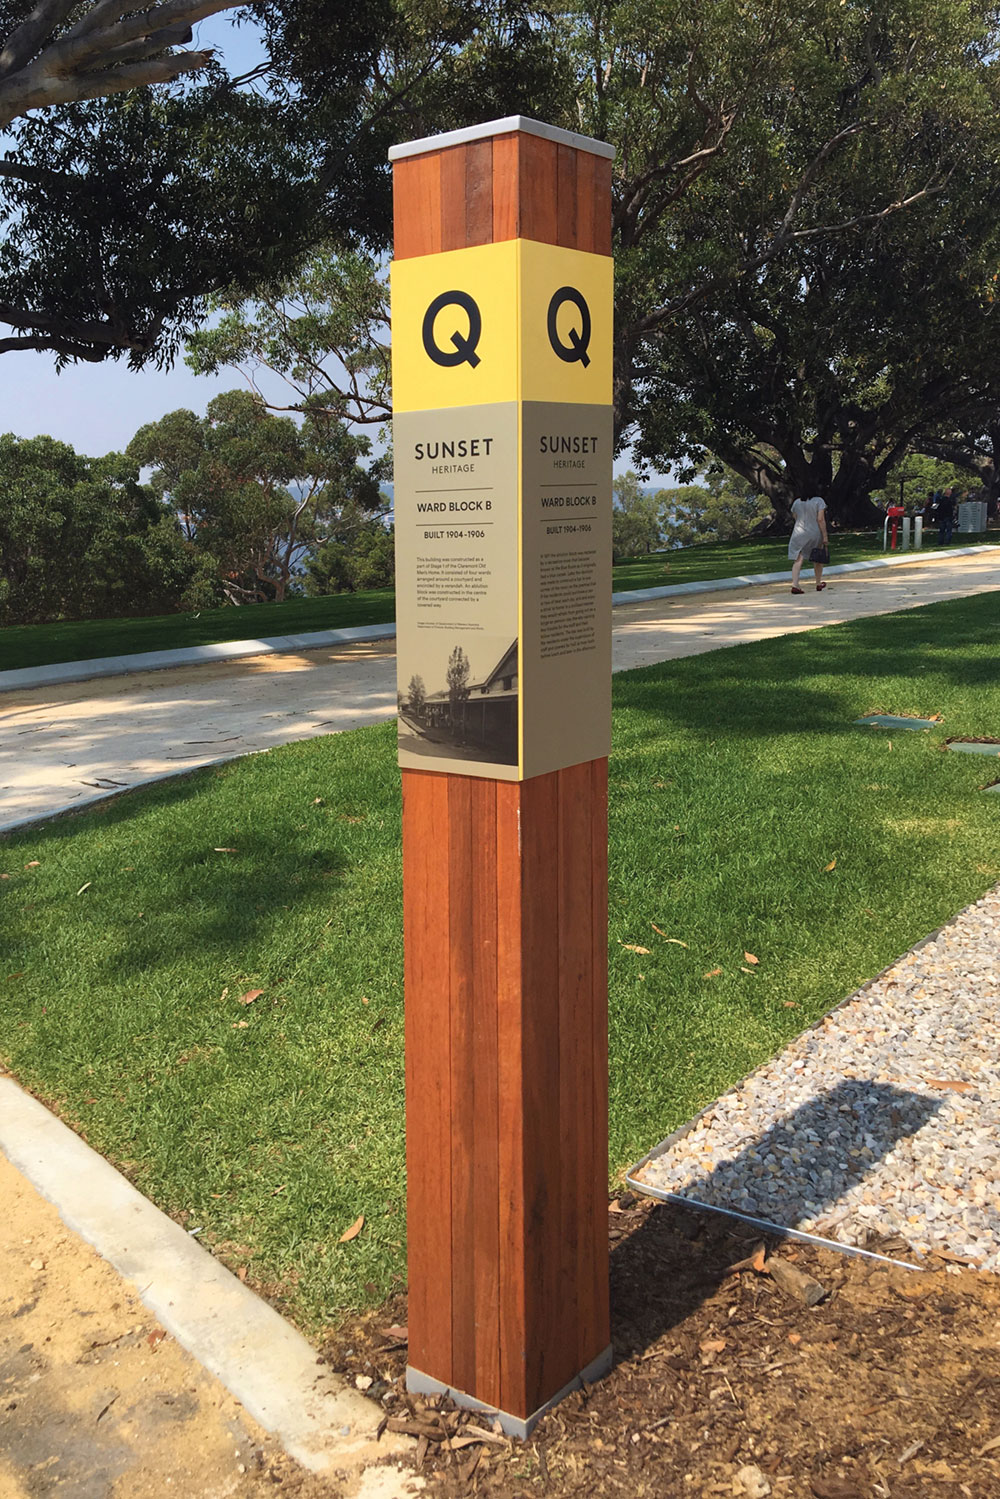 Sunset Heritage Precinct – Interpretive Signage